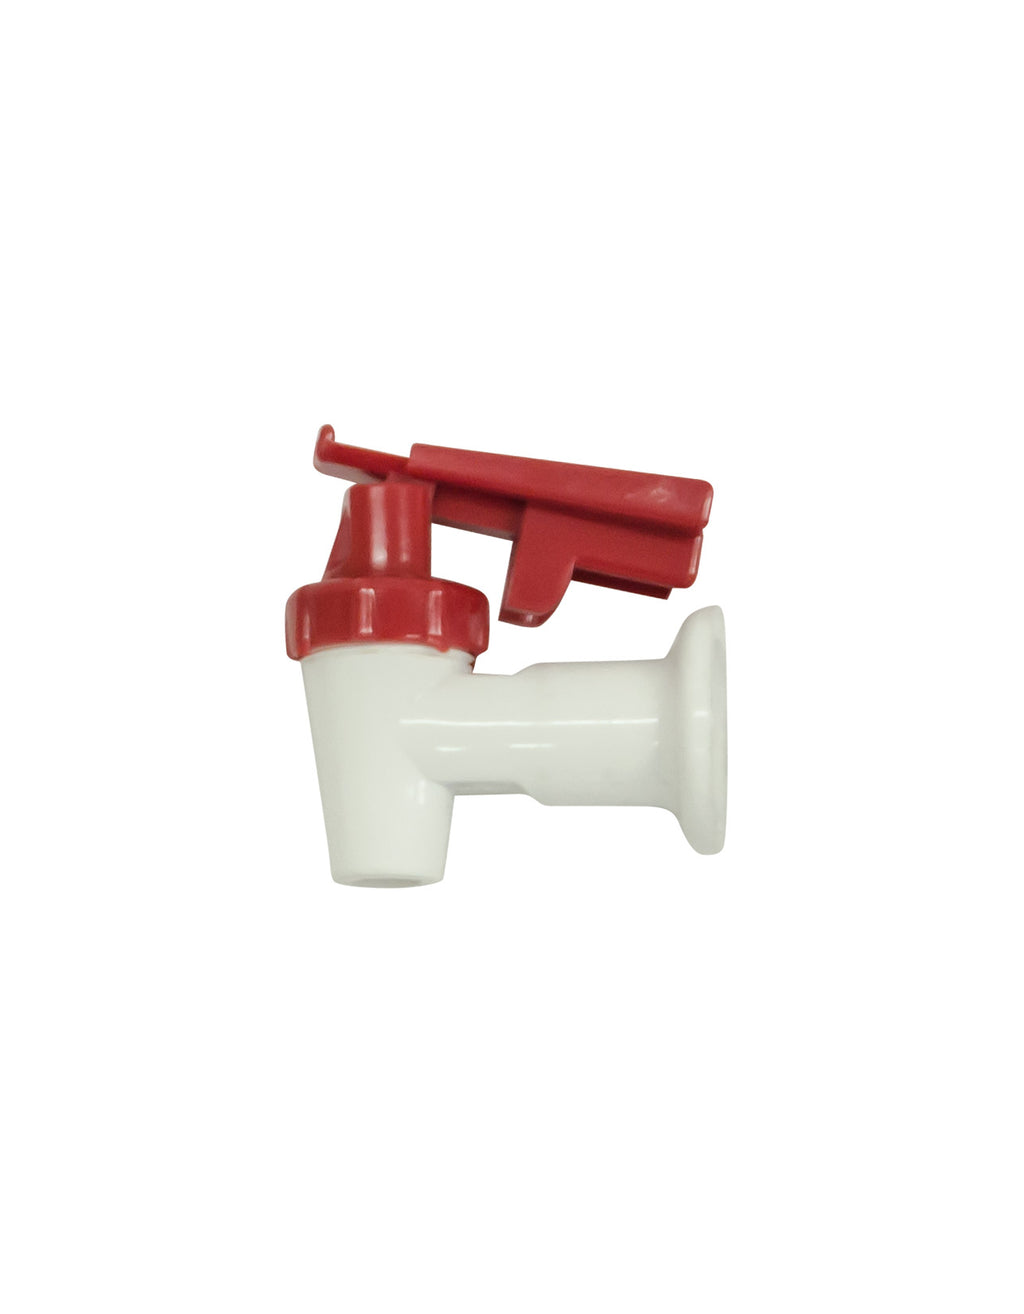 Tap - Red Lever/White Body C/Proof AM